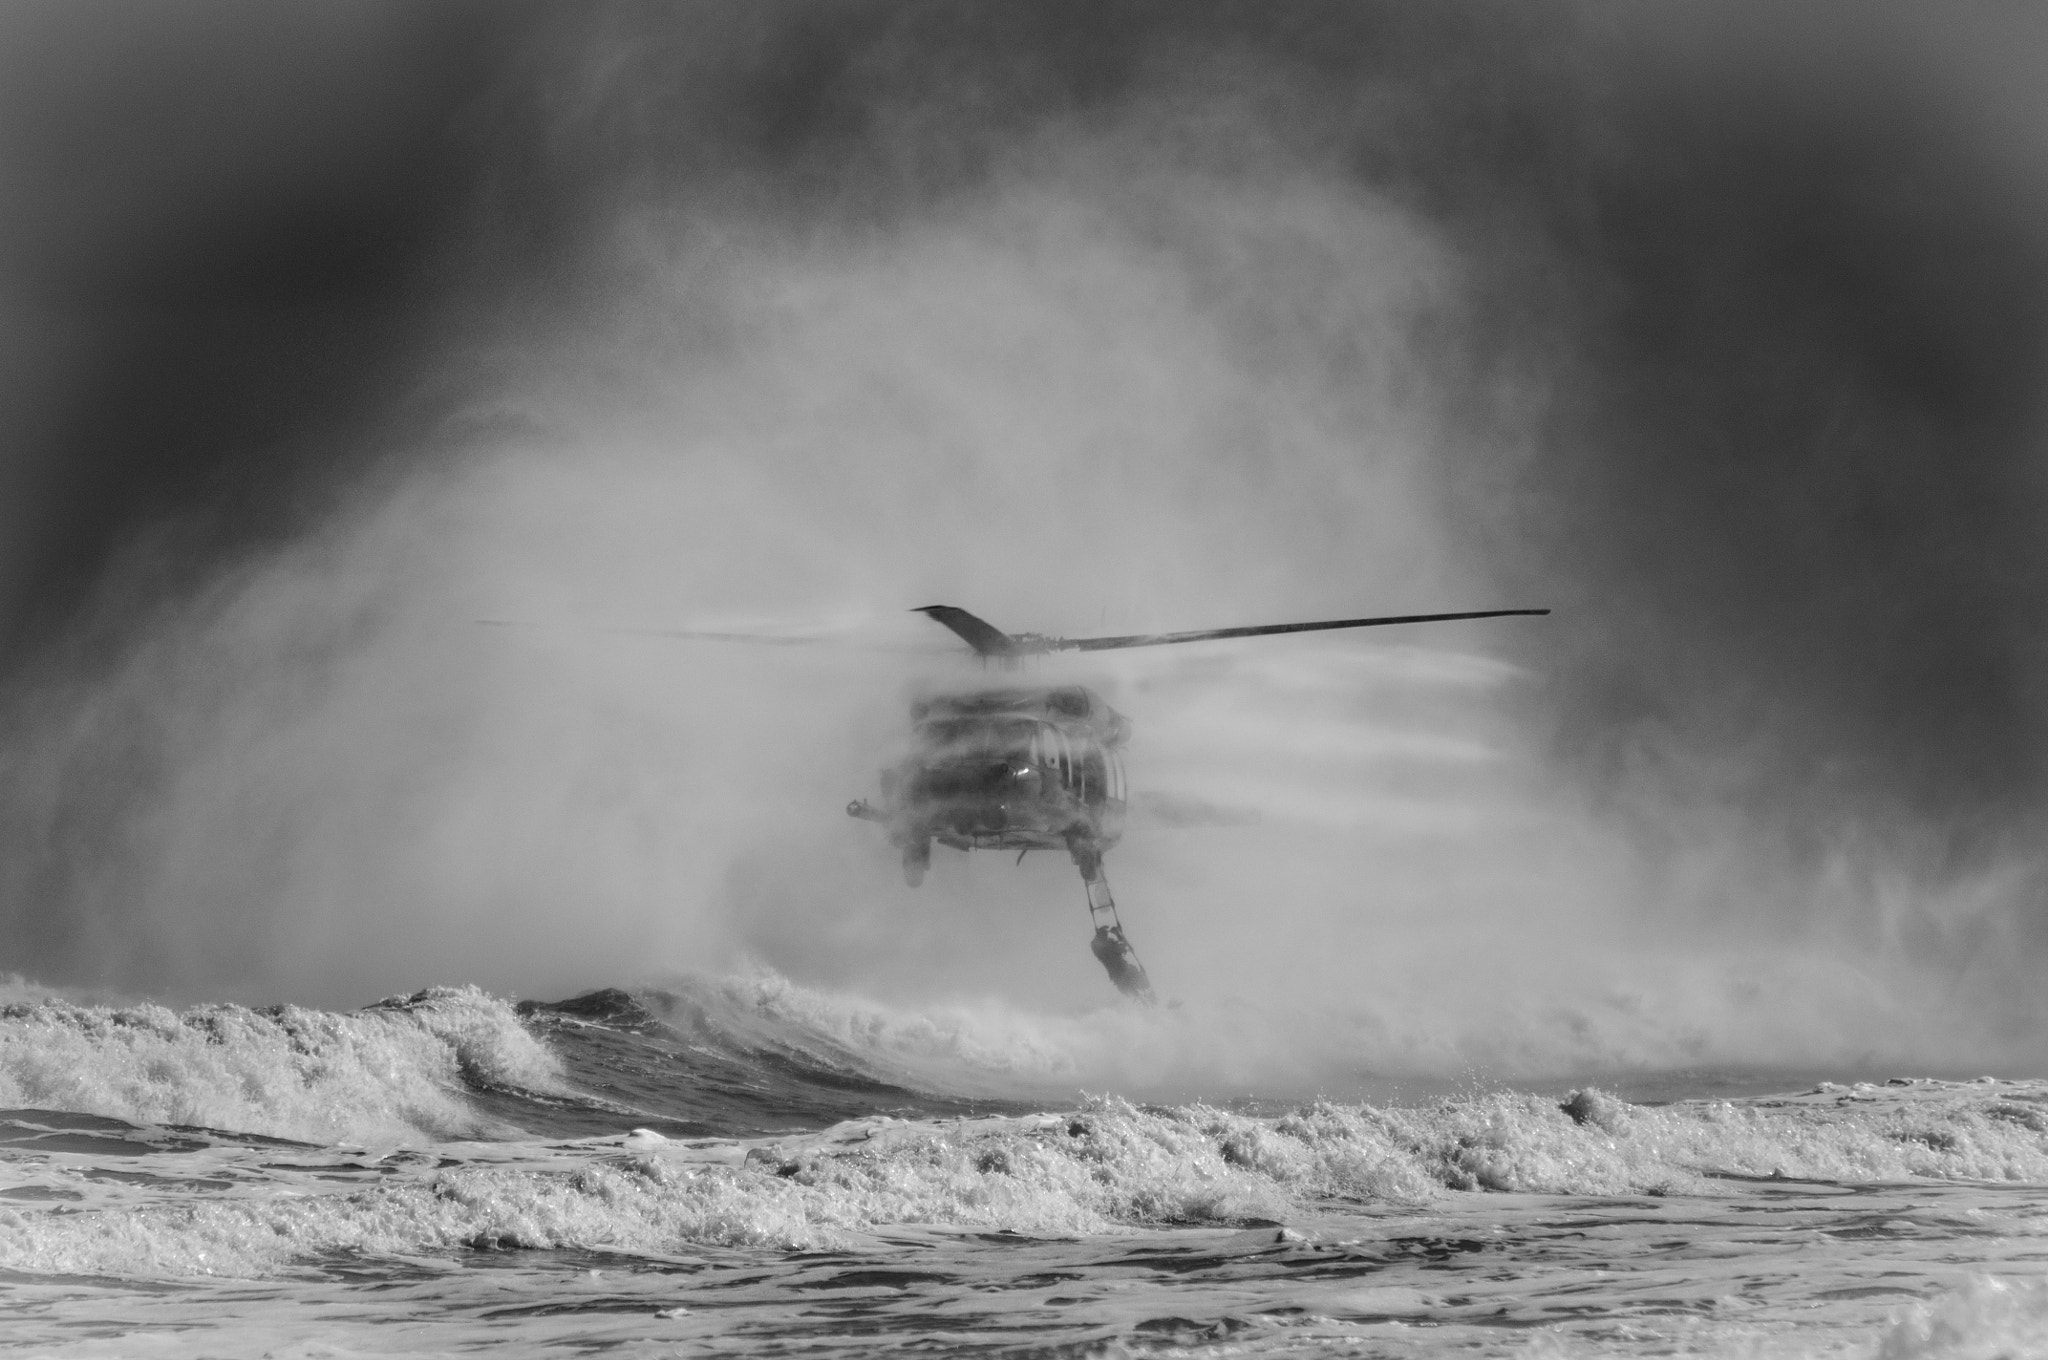 Photograph Surf Rescue by John Carbee on 500px